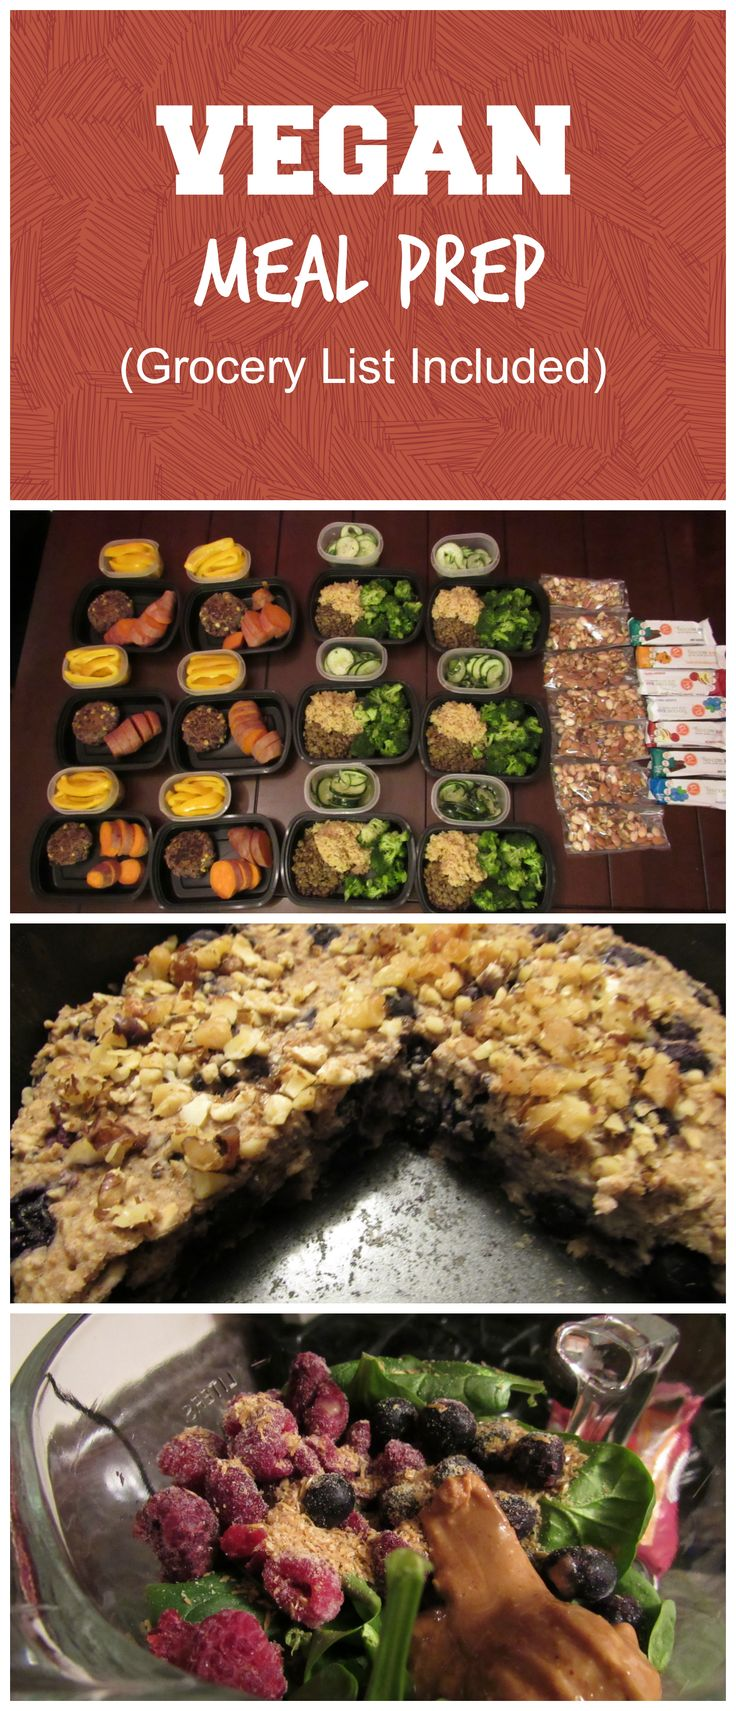 A full week of vegan meal prep! A portion control plan rich in fiber, nutrients, healthy fats, and protein. ~www.LivingLikeLeila.com~ More